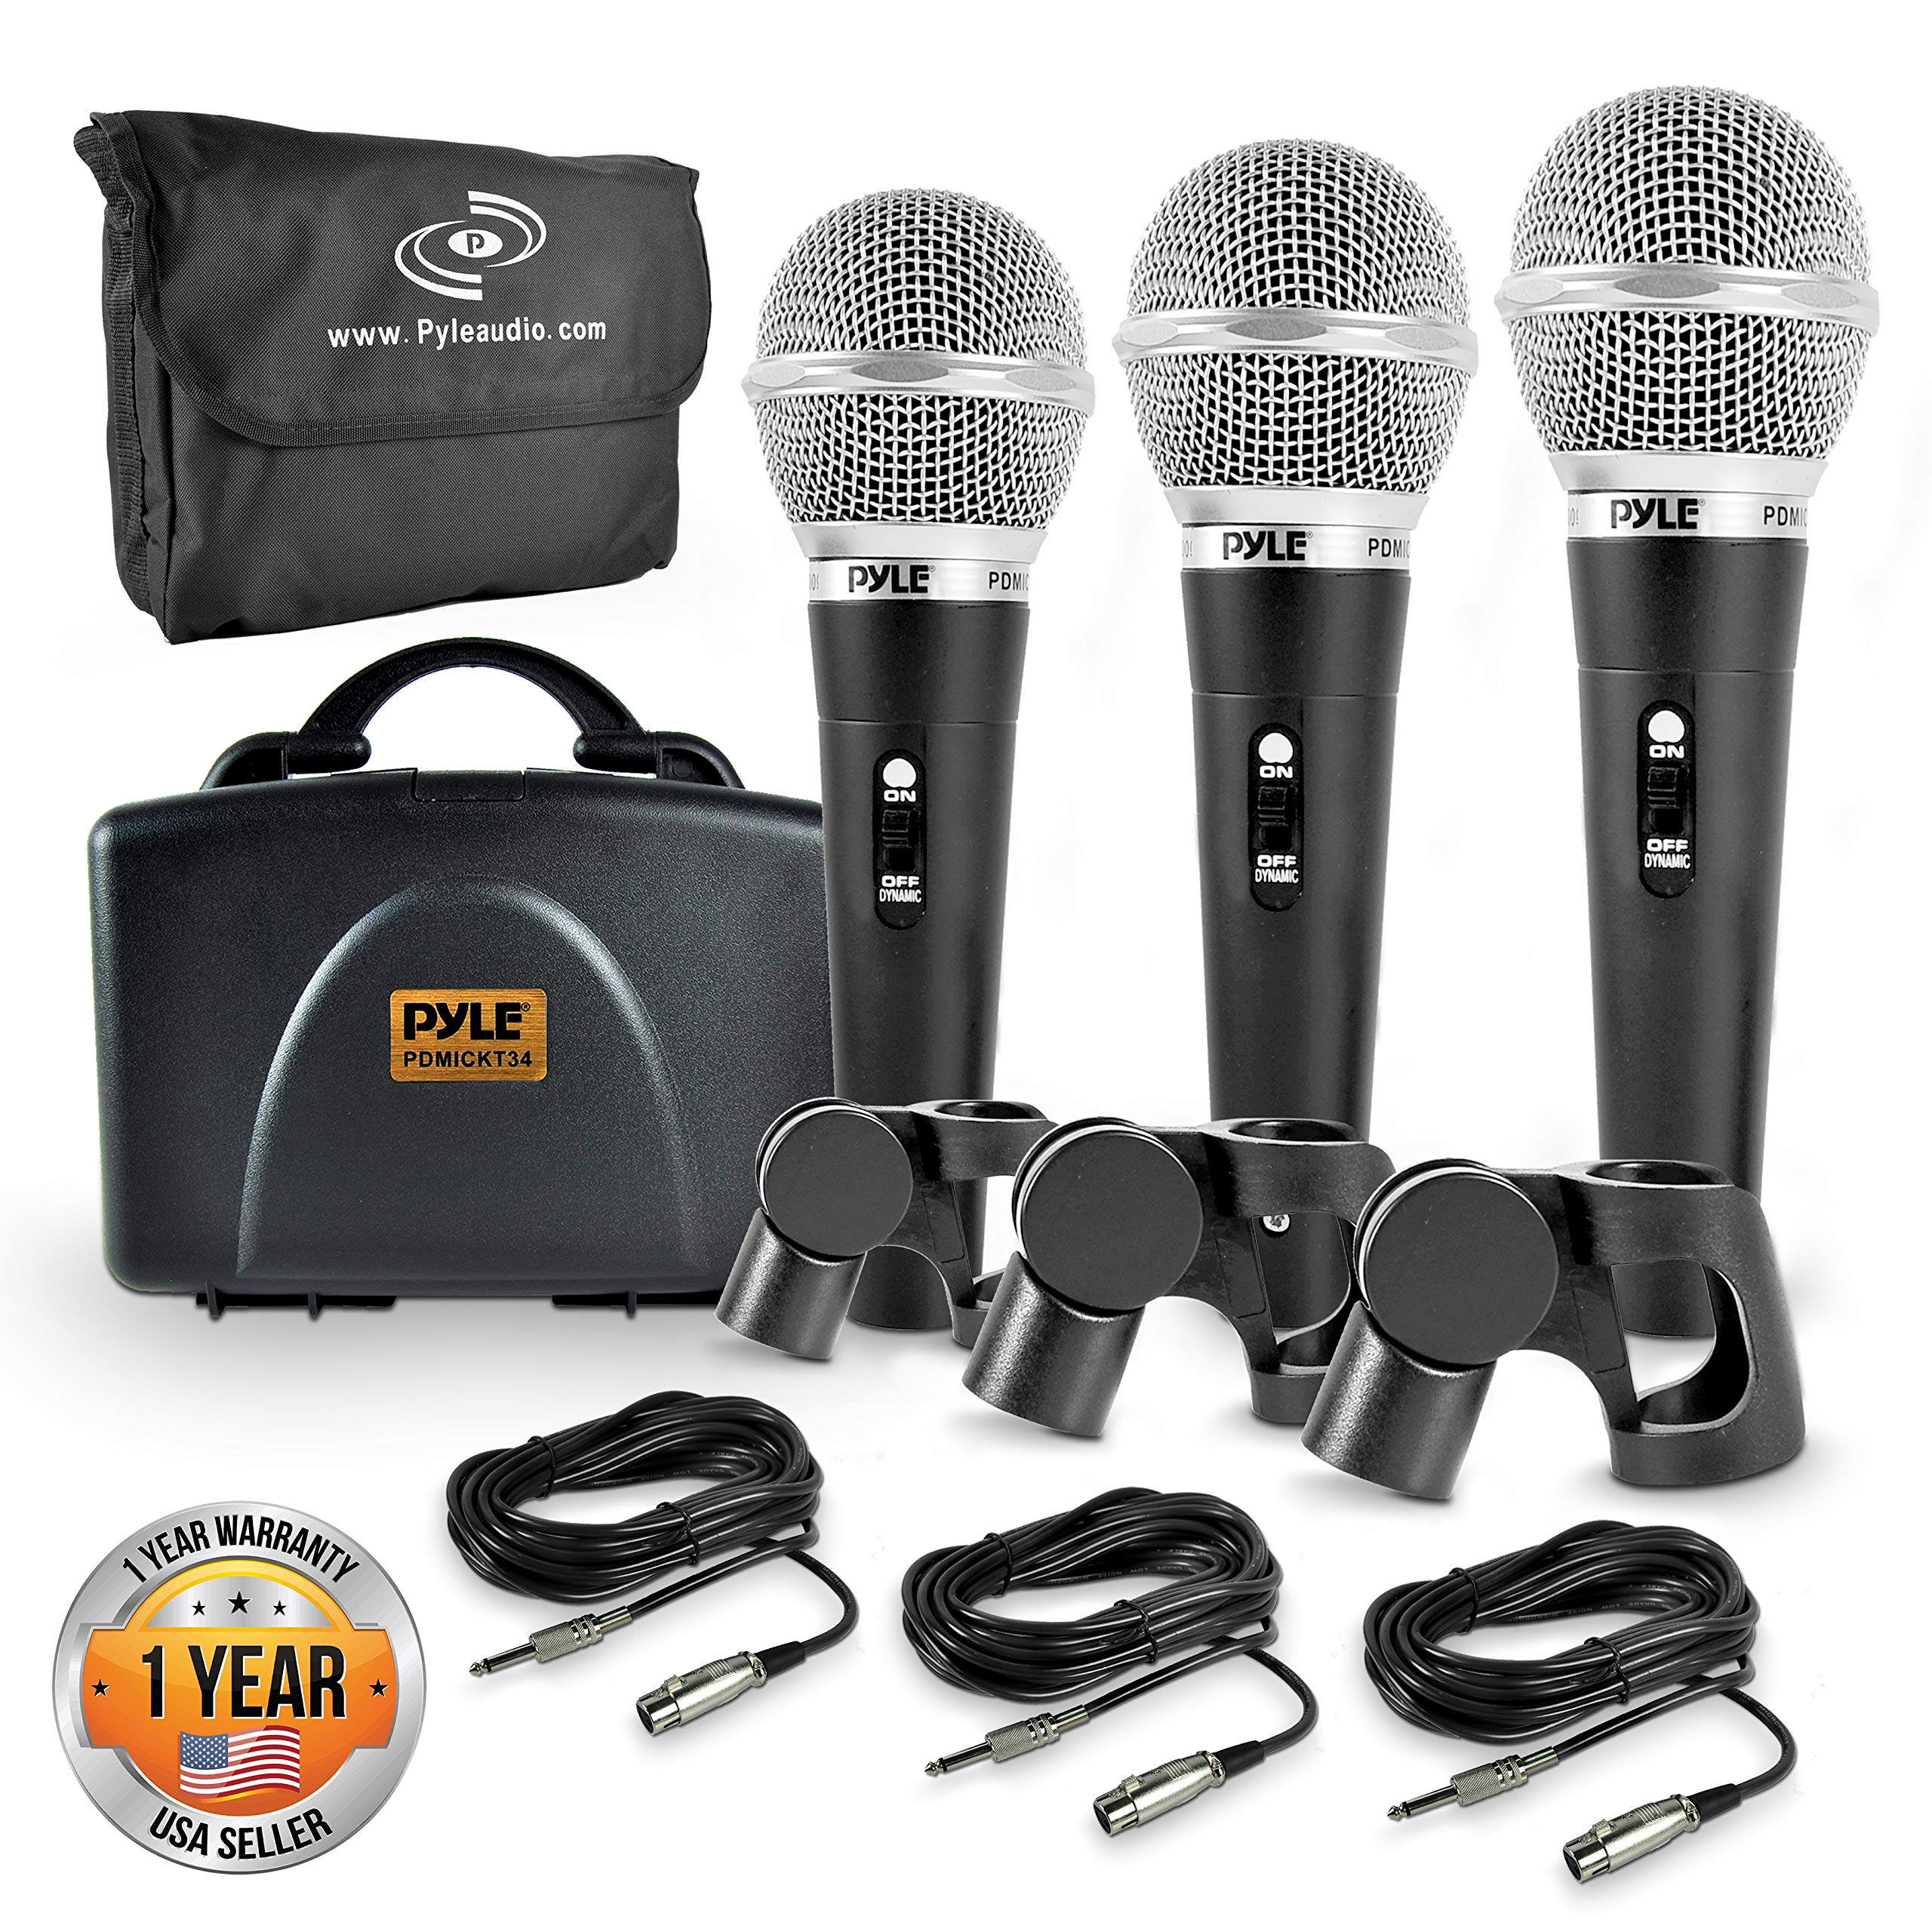 Pyle 3 Piece Professional Dynamic Microphone Kit Cardioid Unidirectional Vocal Handheld MIC with Hard Carry Case & Bag, Holder/Clip & 26ft XLR Audio Cable to 1/4'' Audio Connection (PDMICKT34) by Pyle